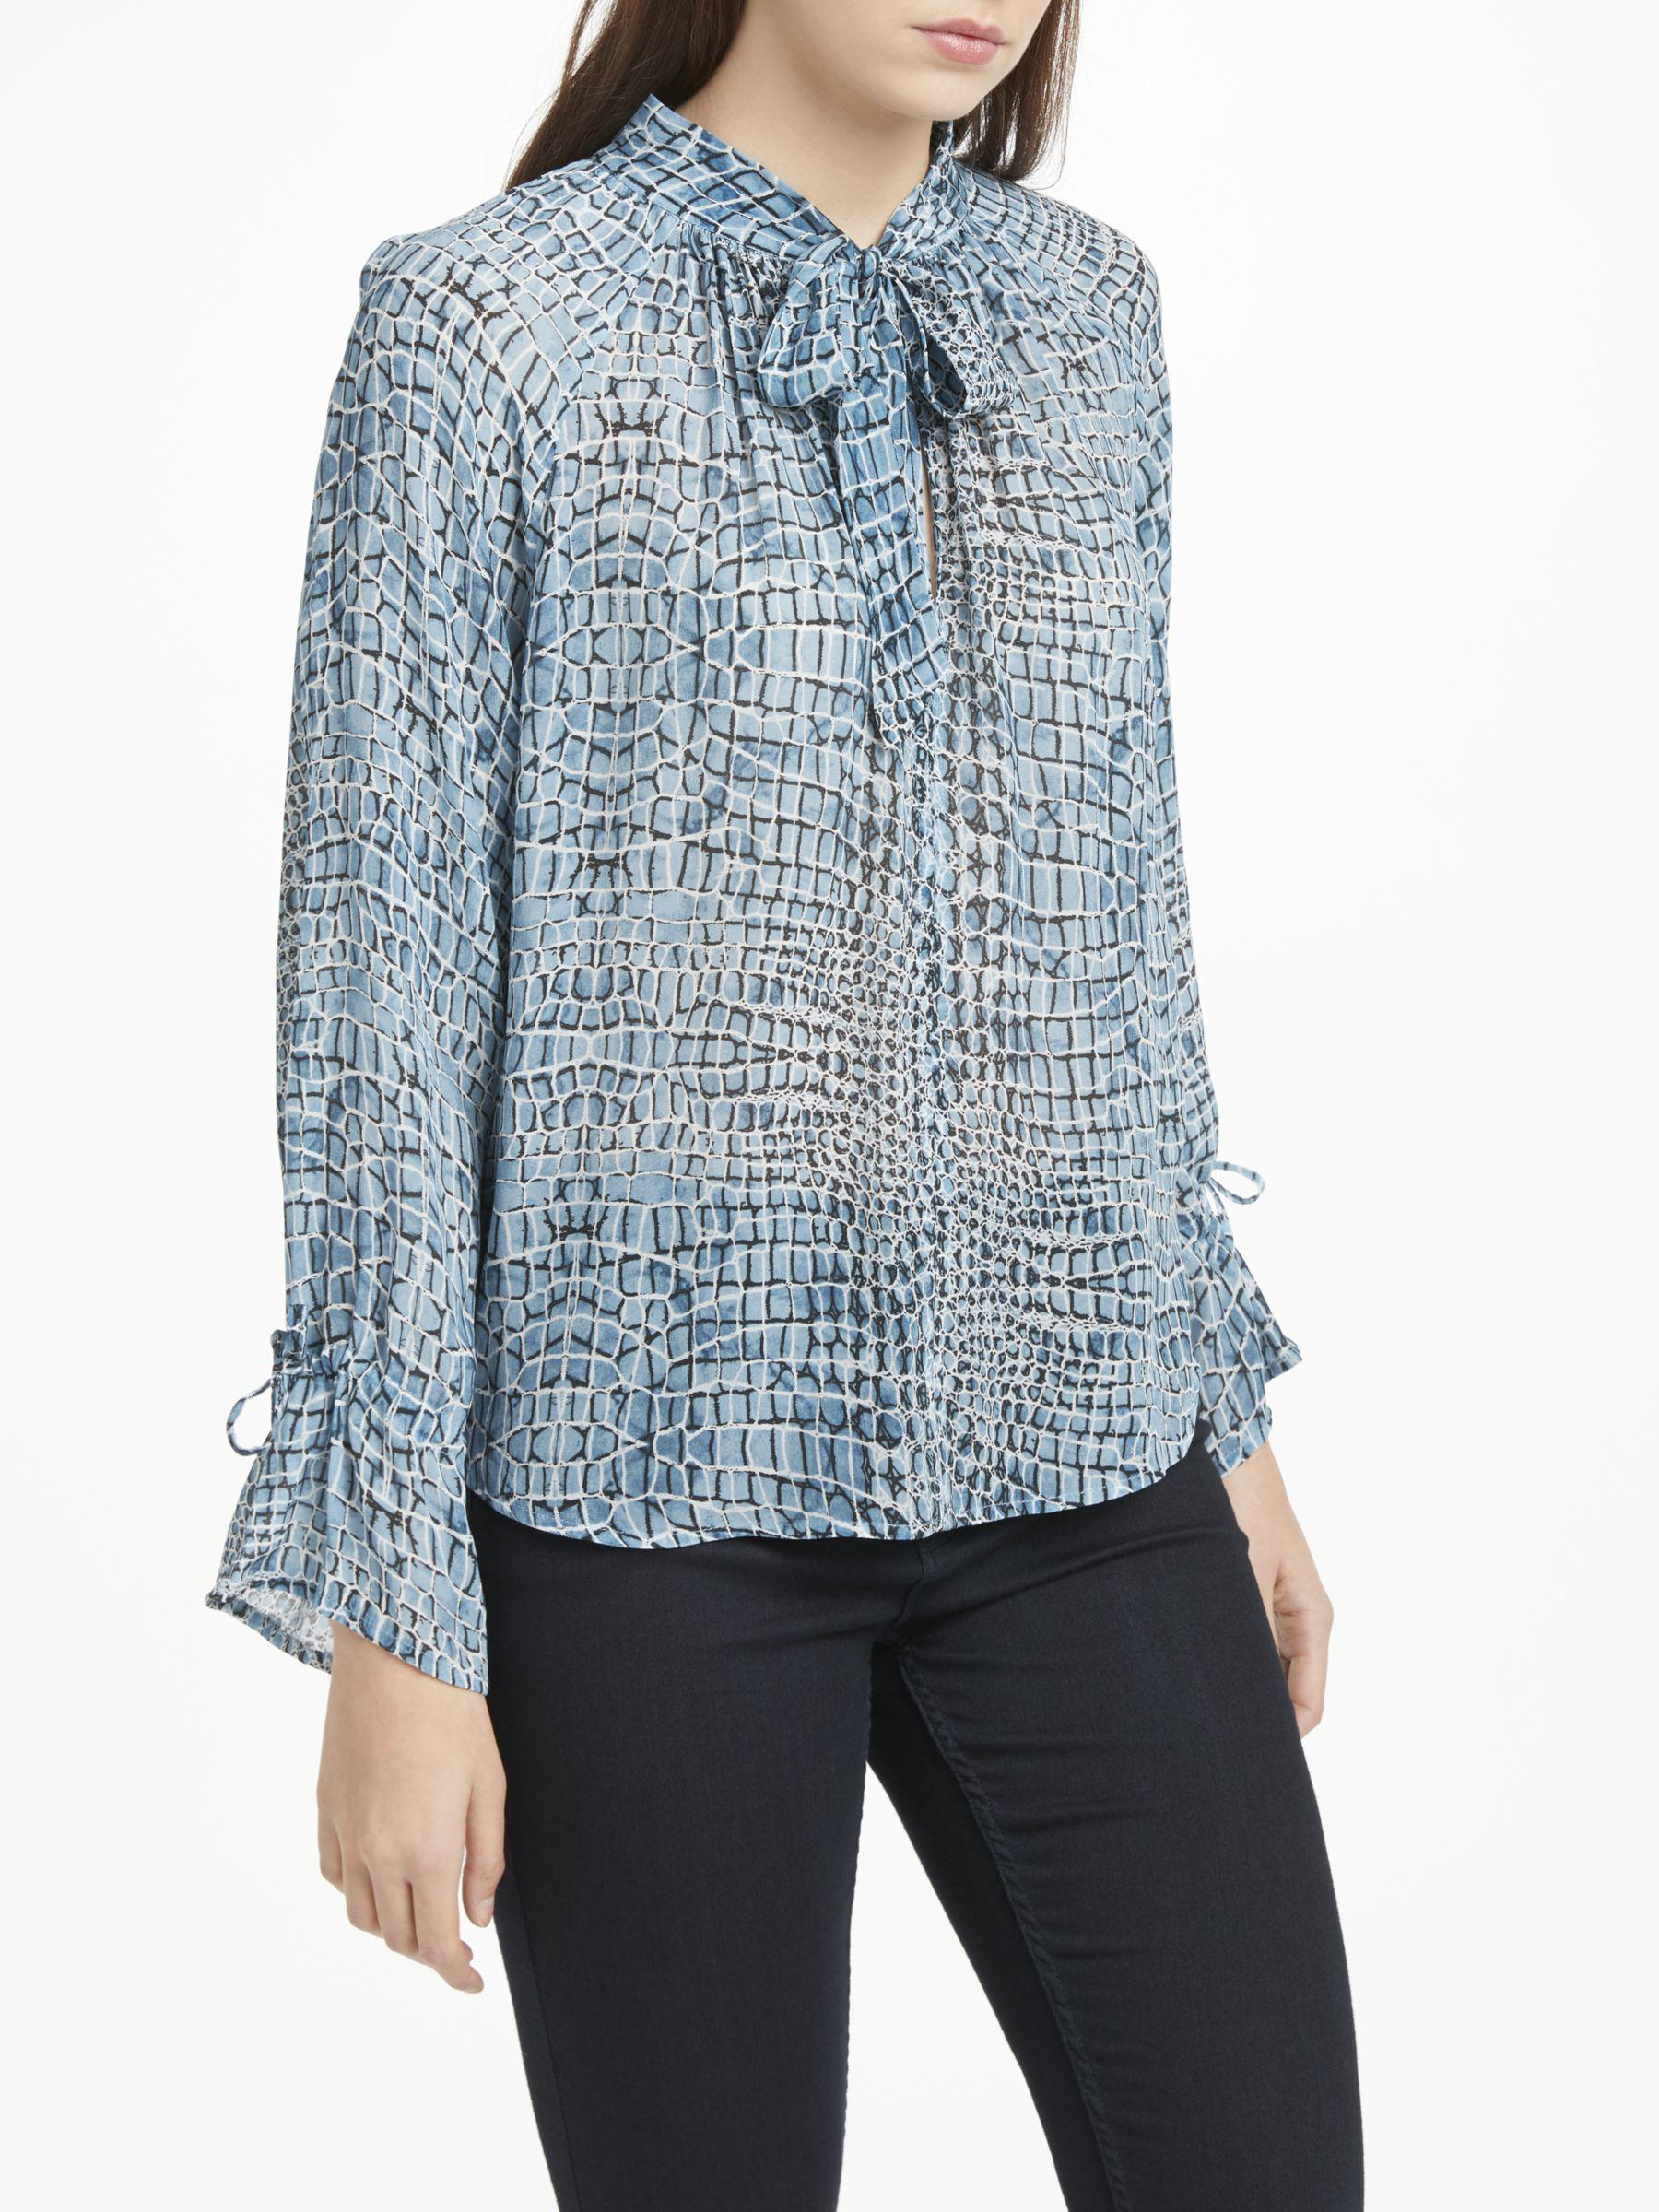 34d104bd14b277 Pyrus Anais Tie Neck Abstract Print Blouse in Blue - Lyst